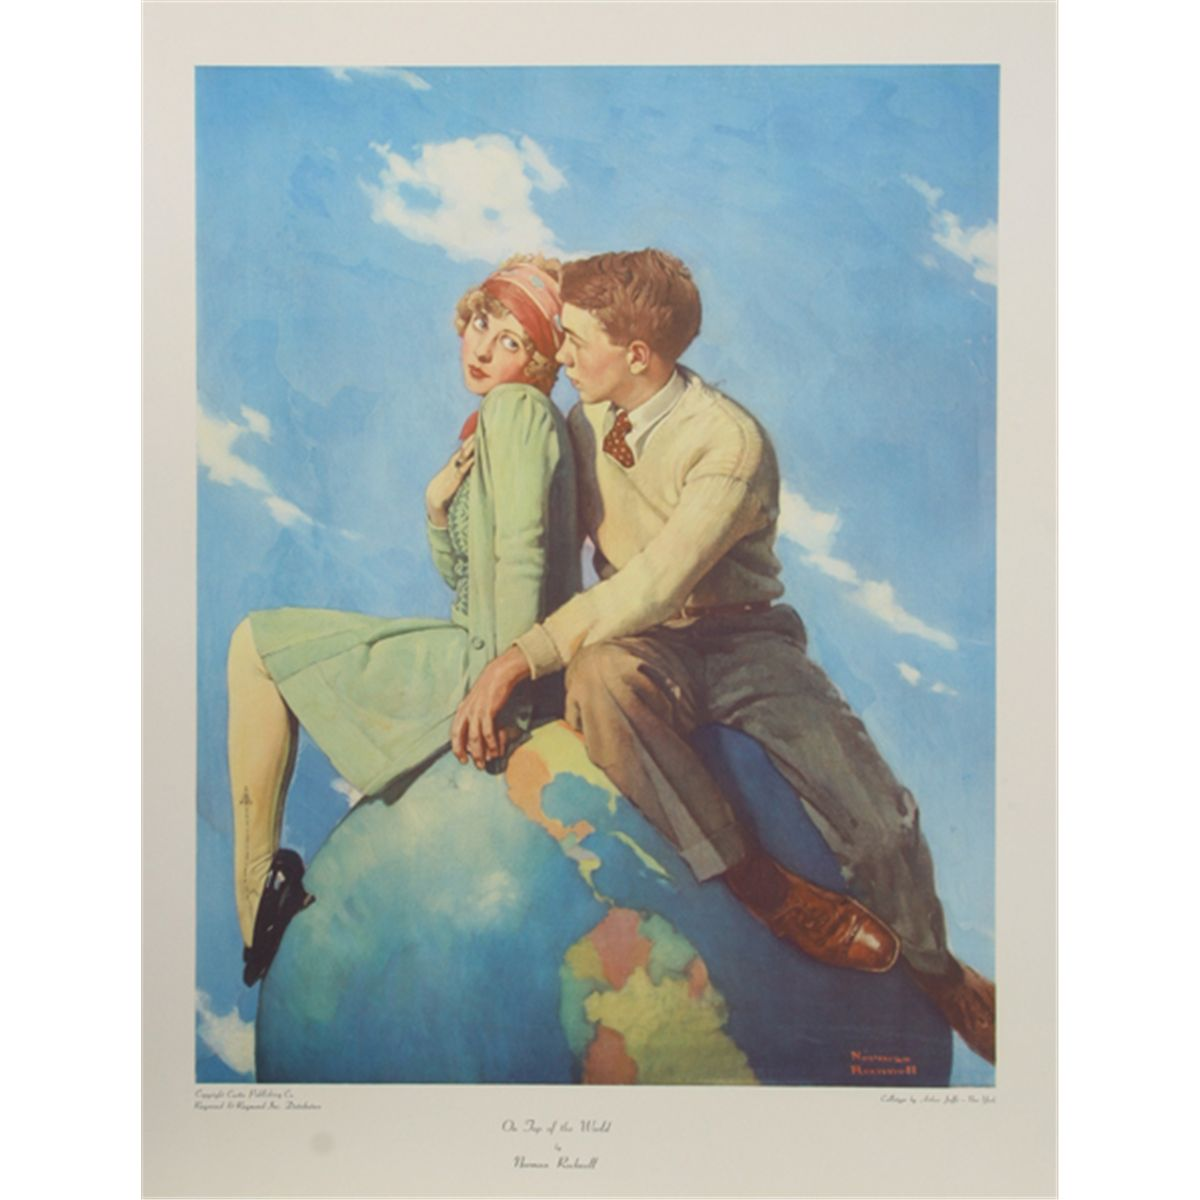 Norman Rockwell, On top of the World, Collotype Poster